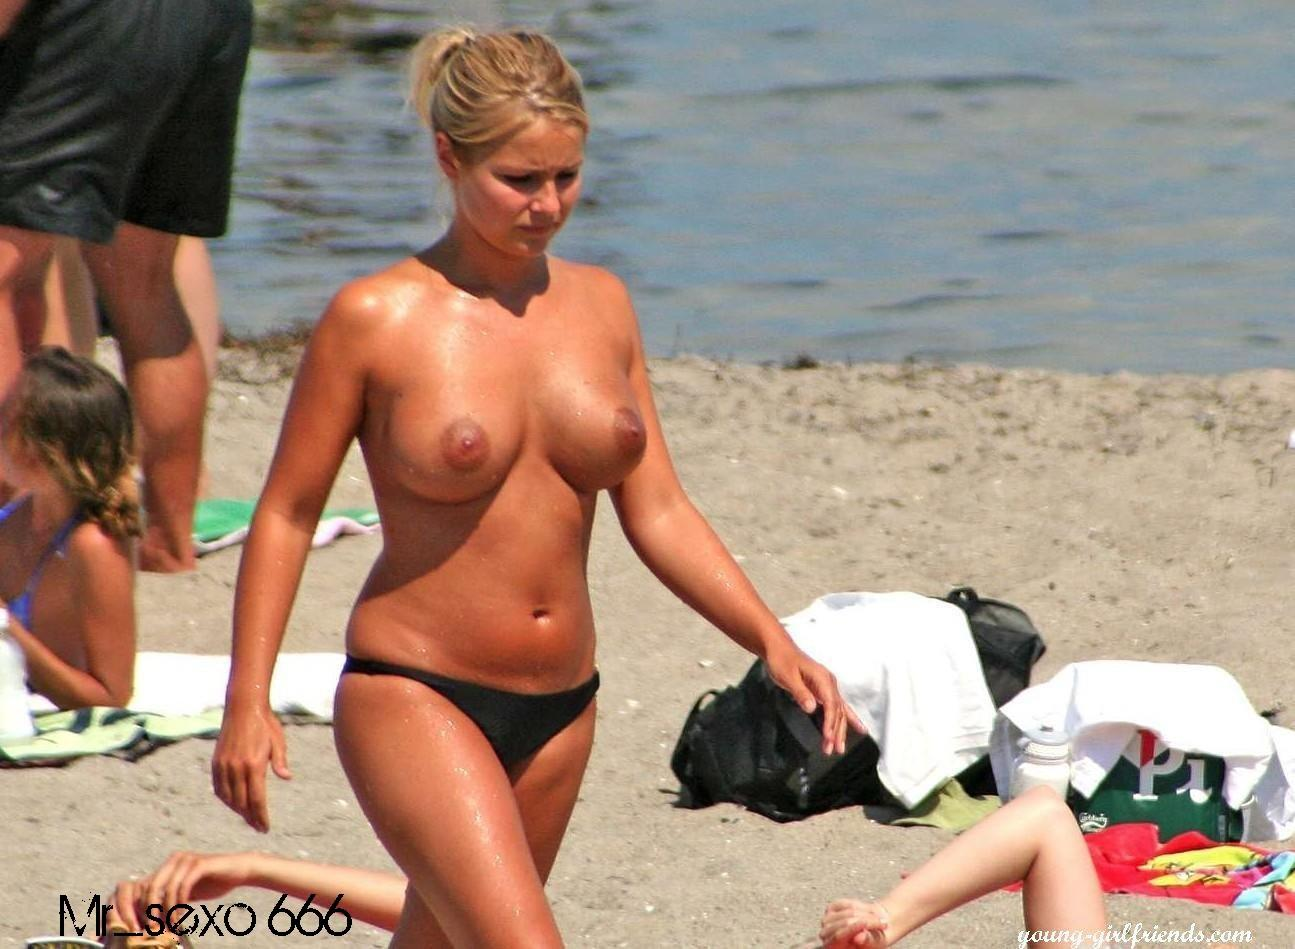 Sexo en la playa ade sexual